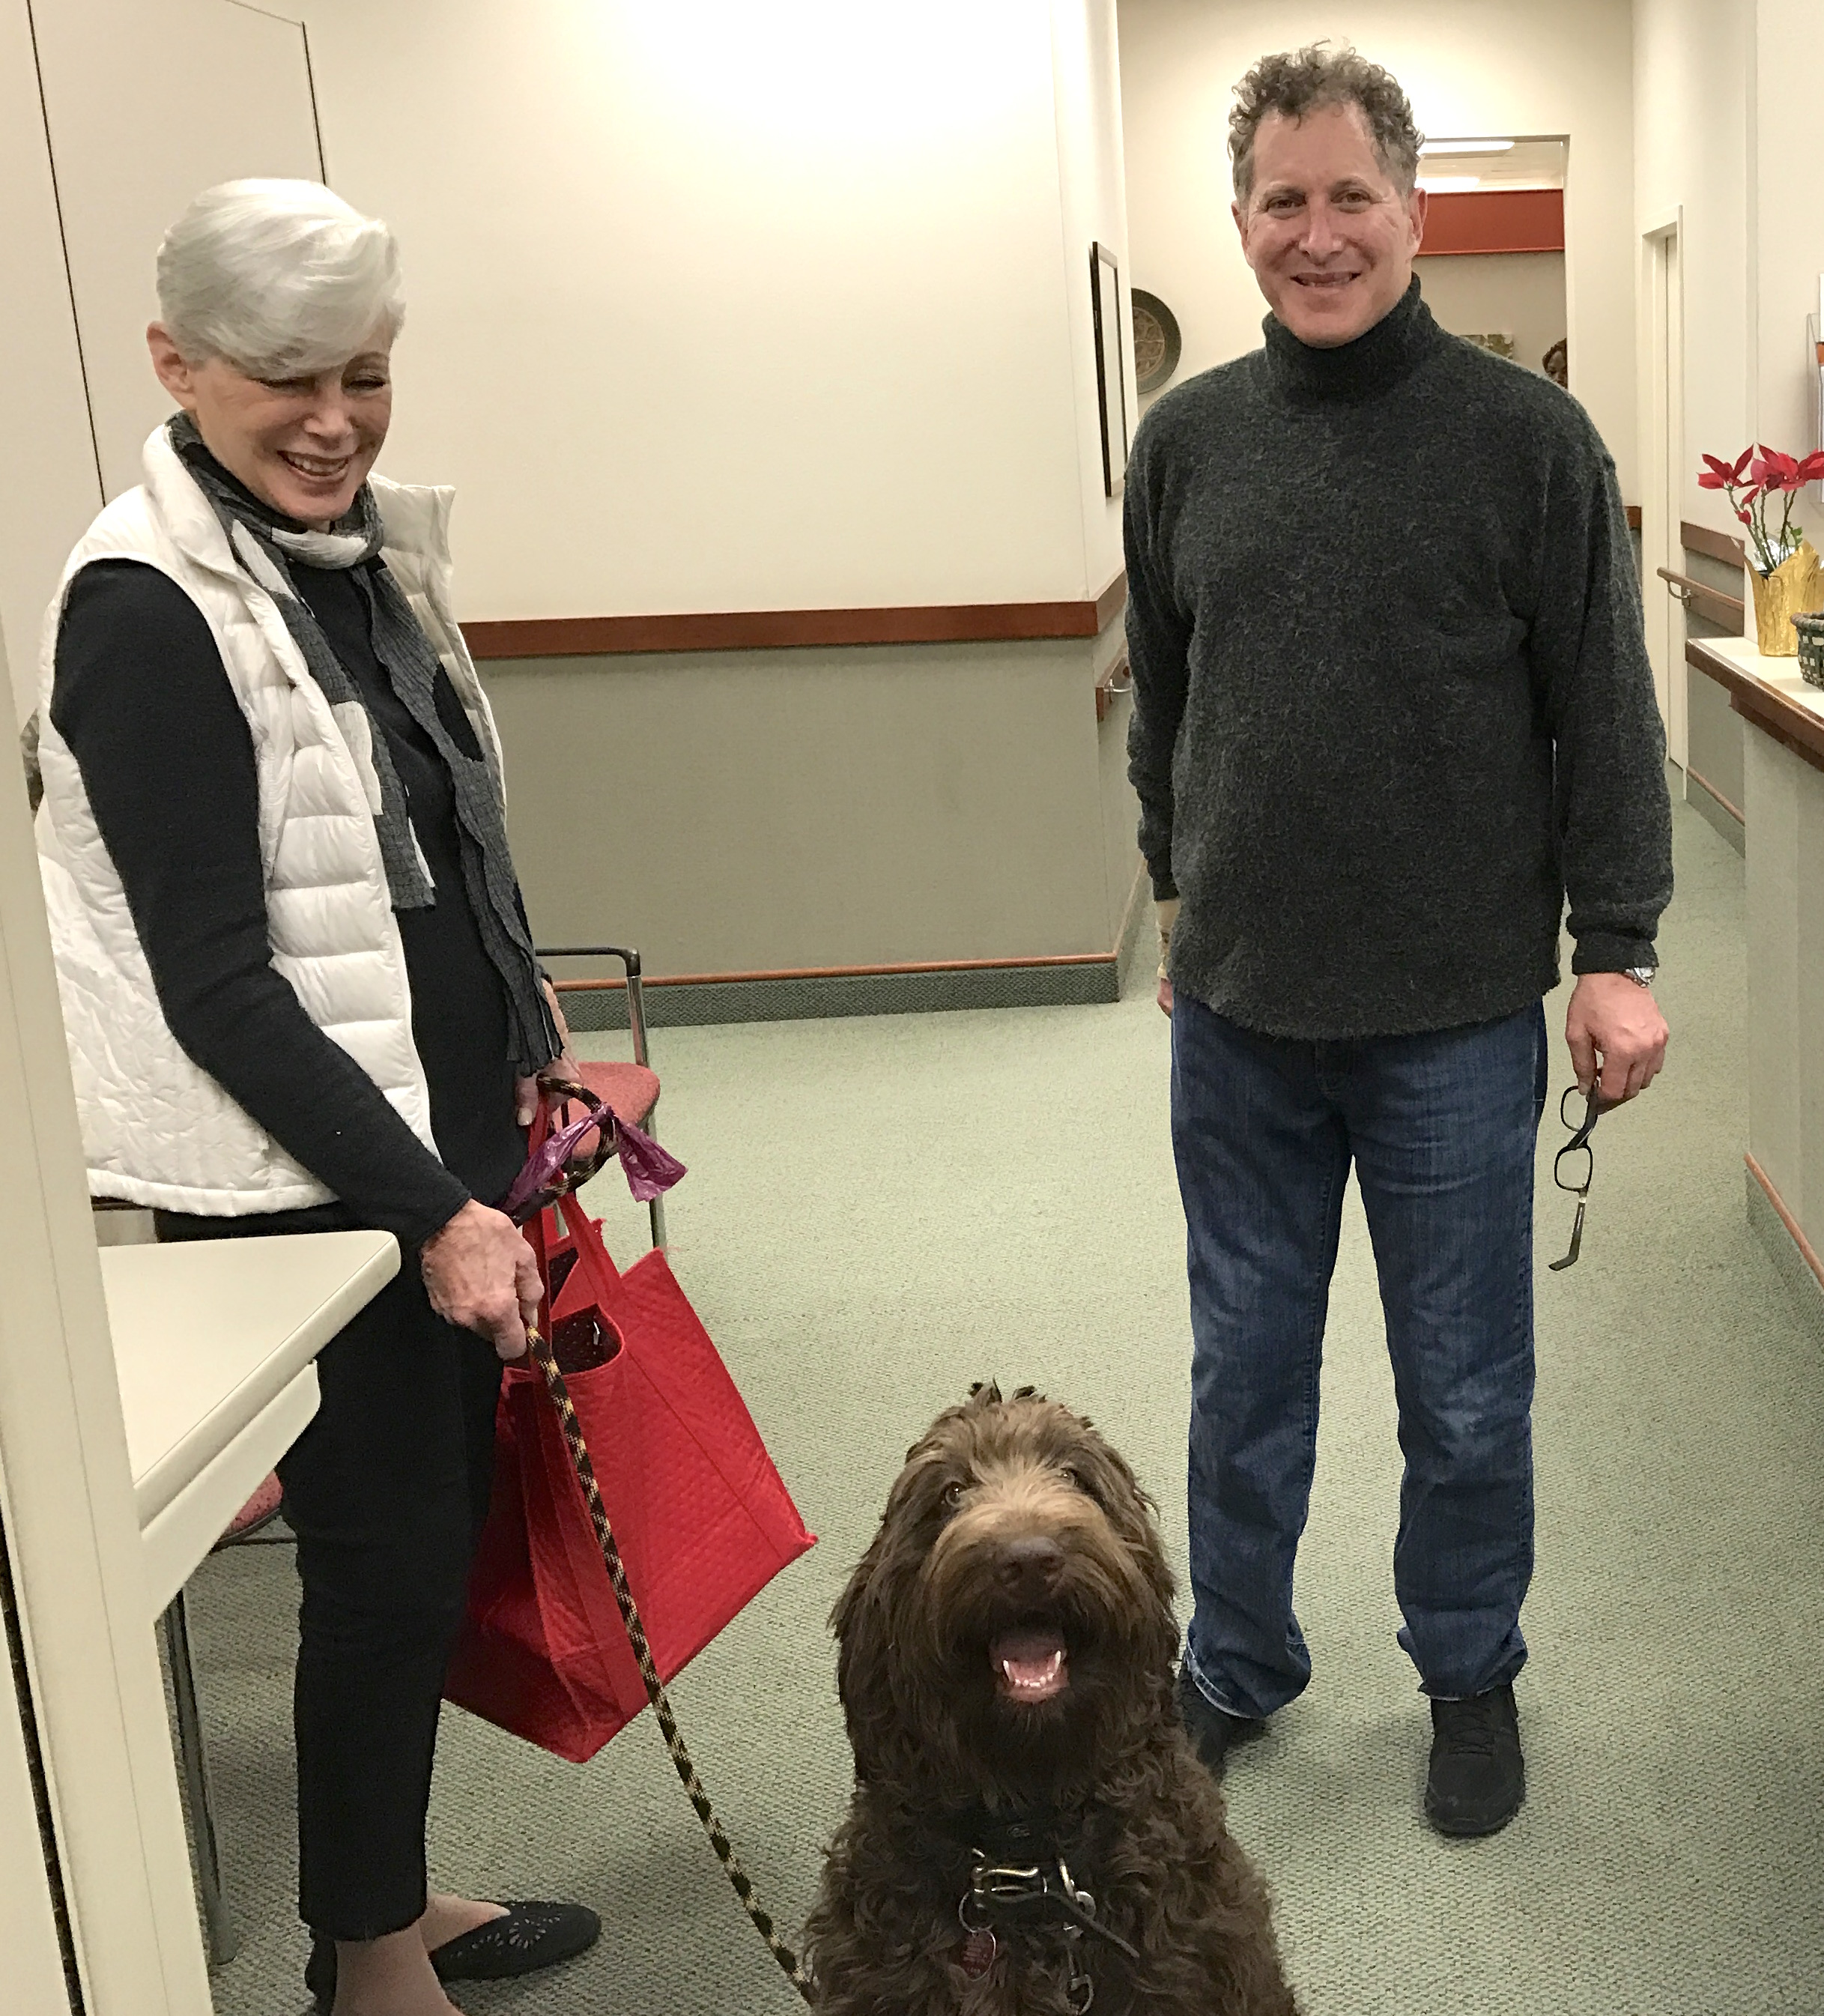 Dr. Andrew Rubin at Dankmeyer, with his mother and Luca the Goldendoodle.